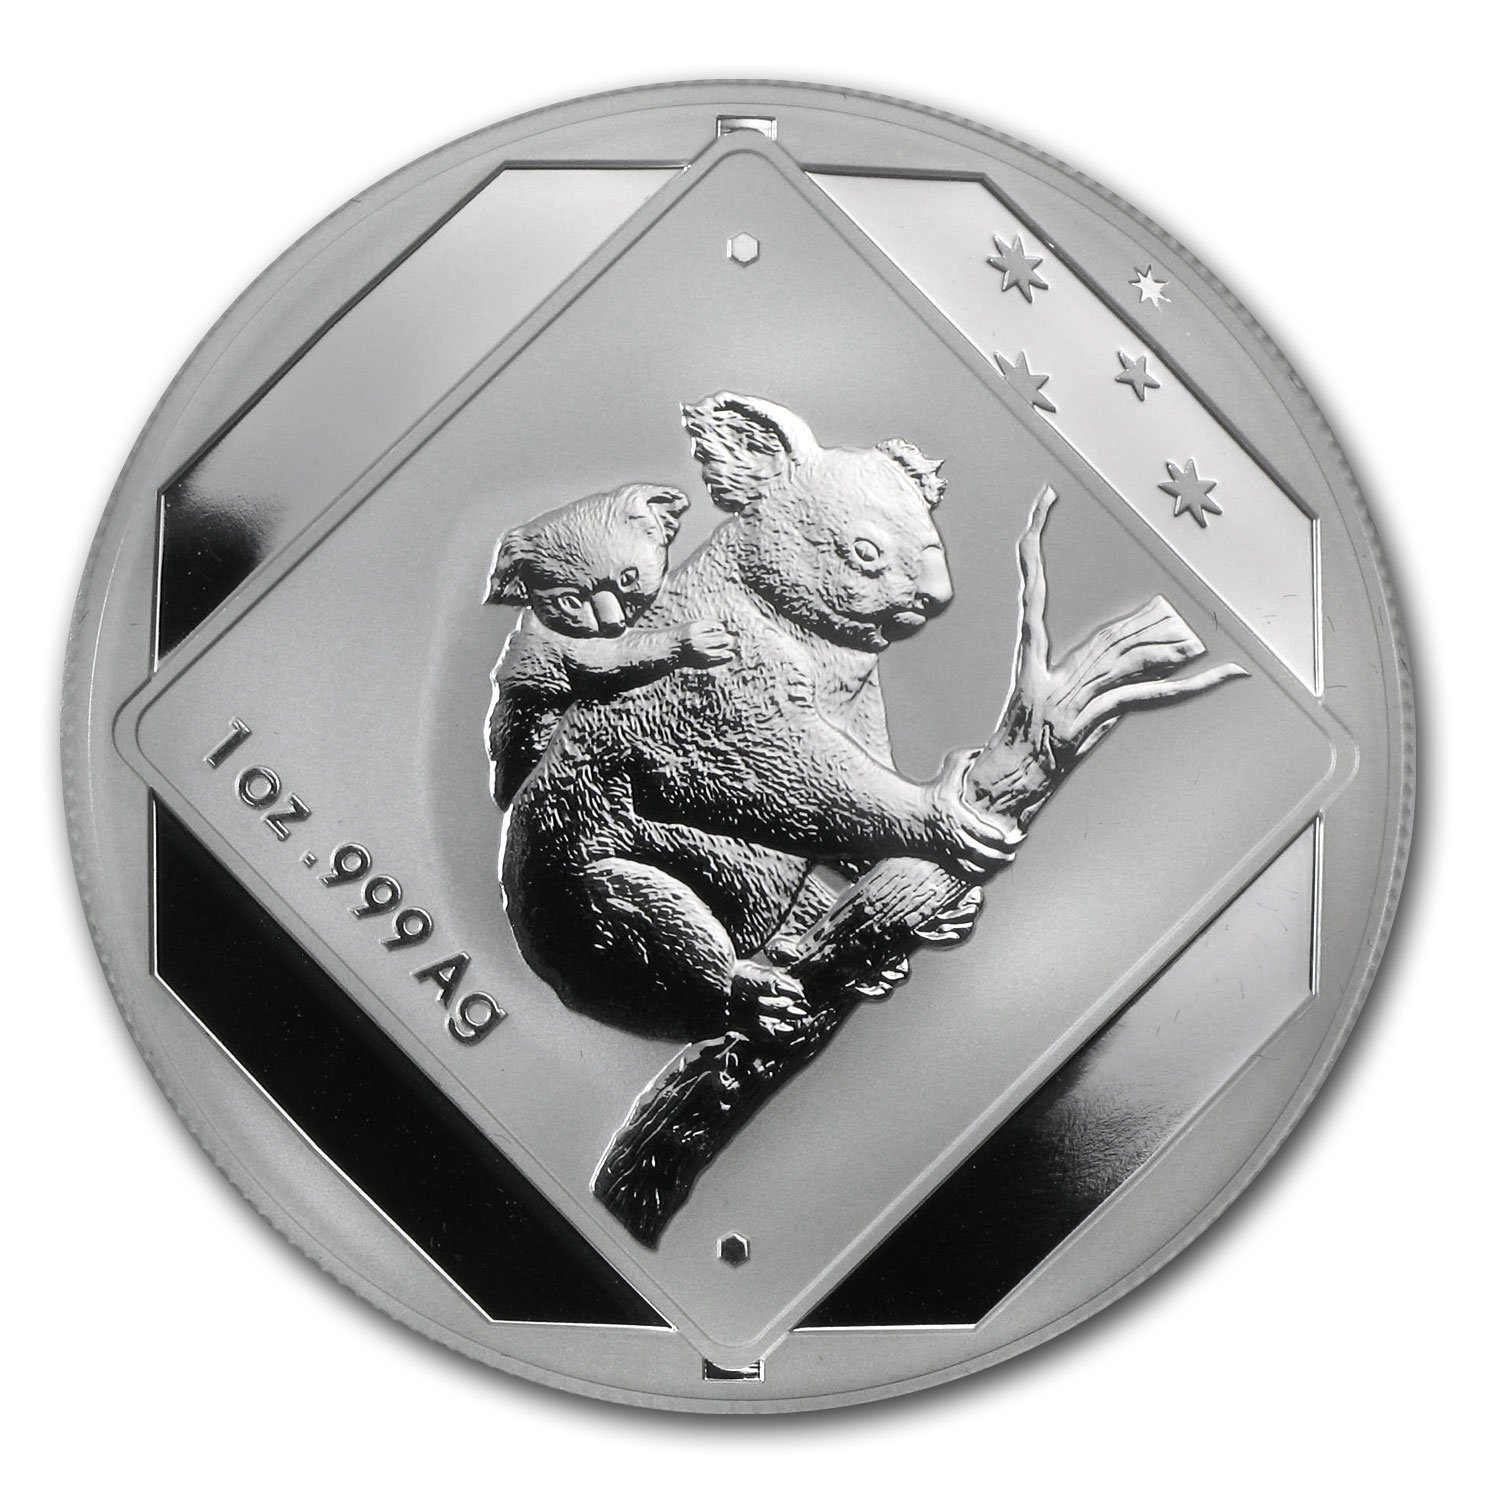 2014 Australia 1 oz Silver Koala Road Sign